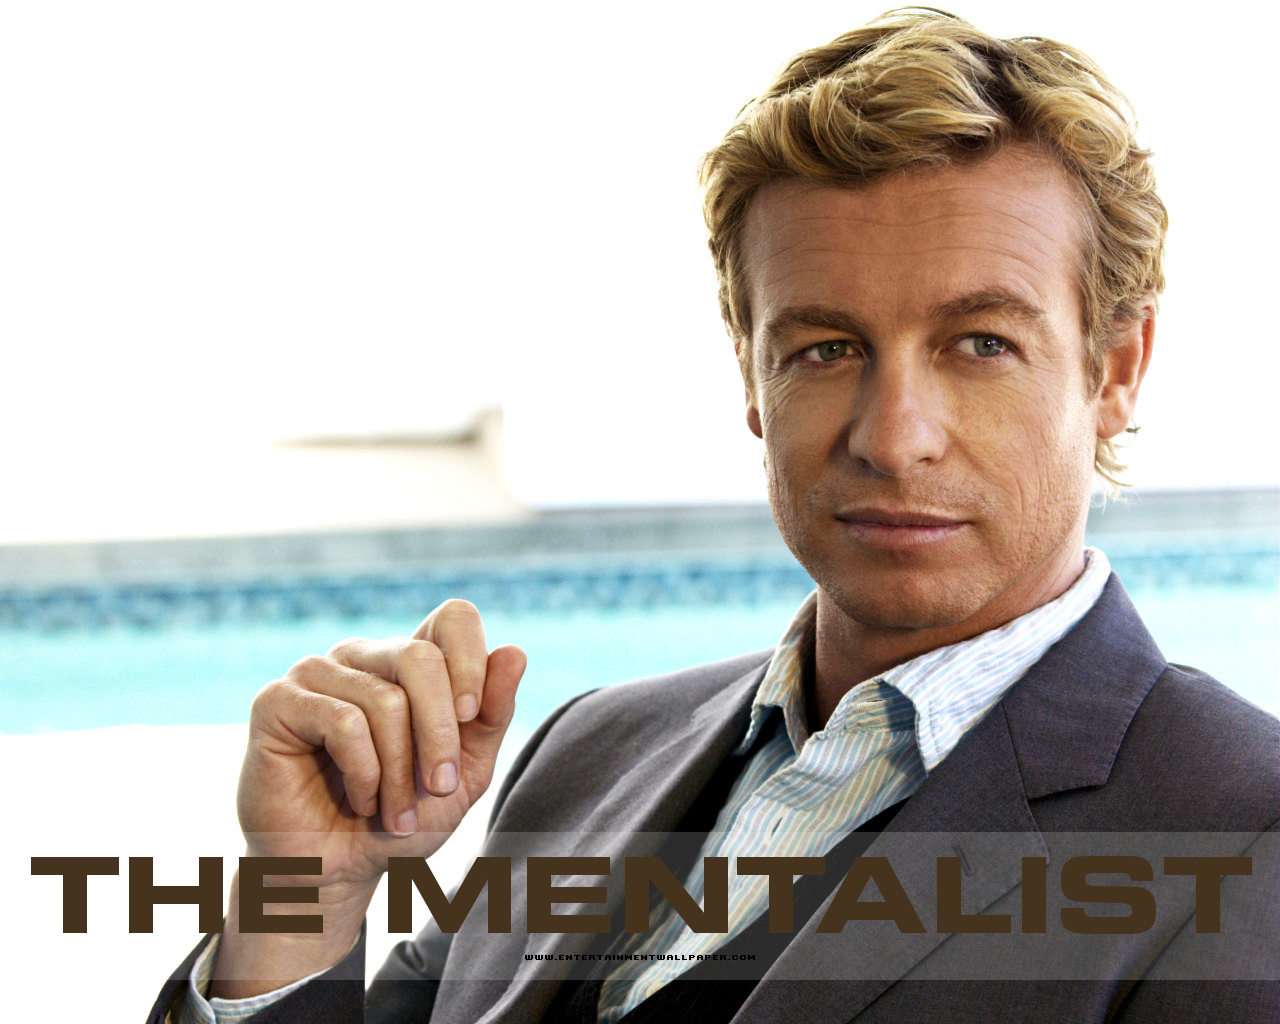 the mentalist 125019 Five TV Shows I Cant Stop Watching